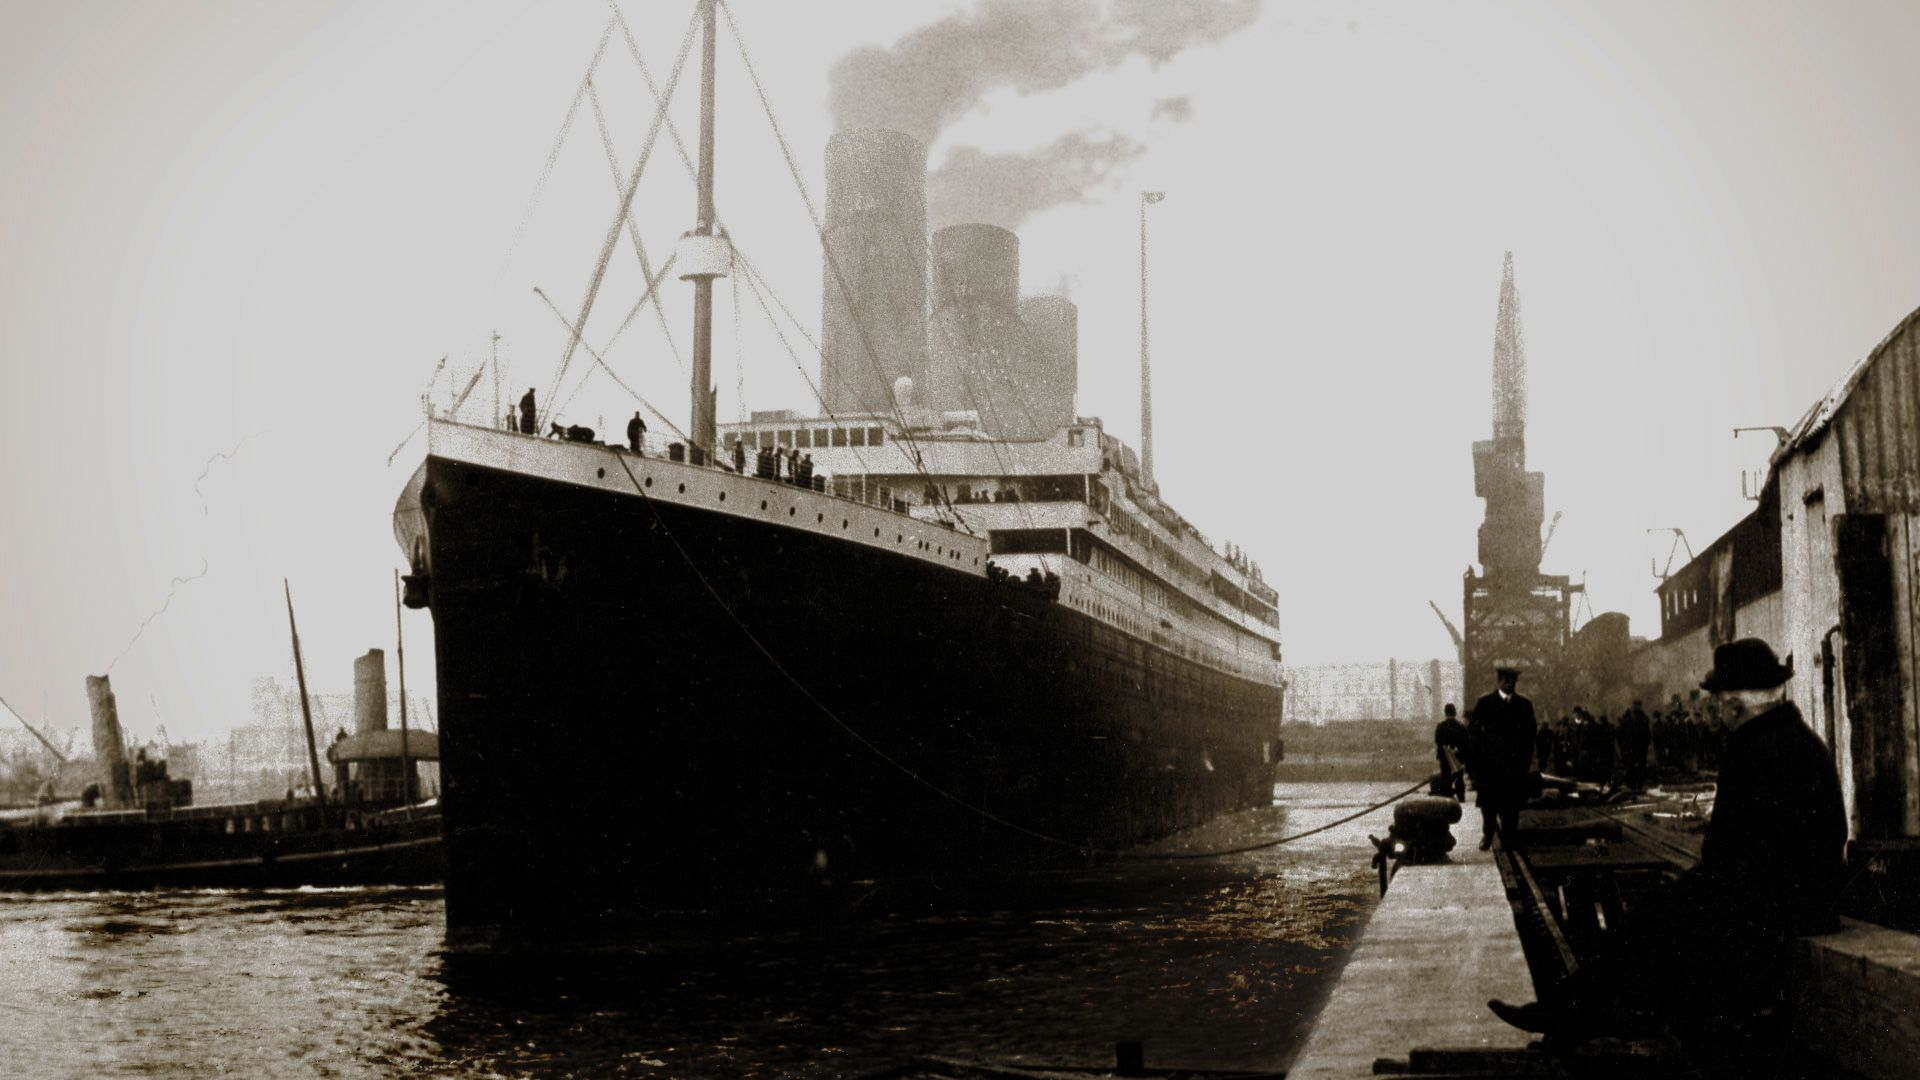 Story from RMS Titanic